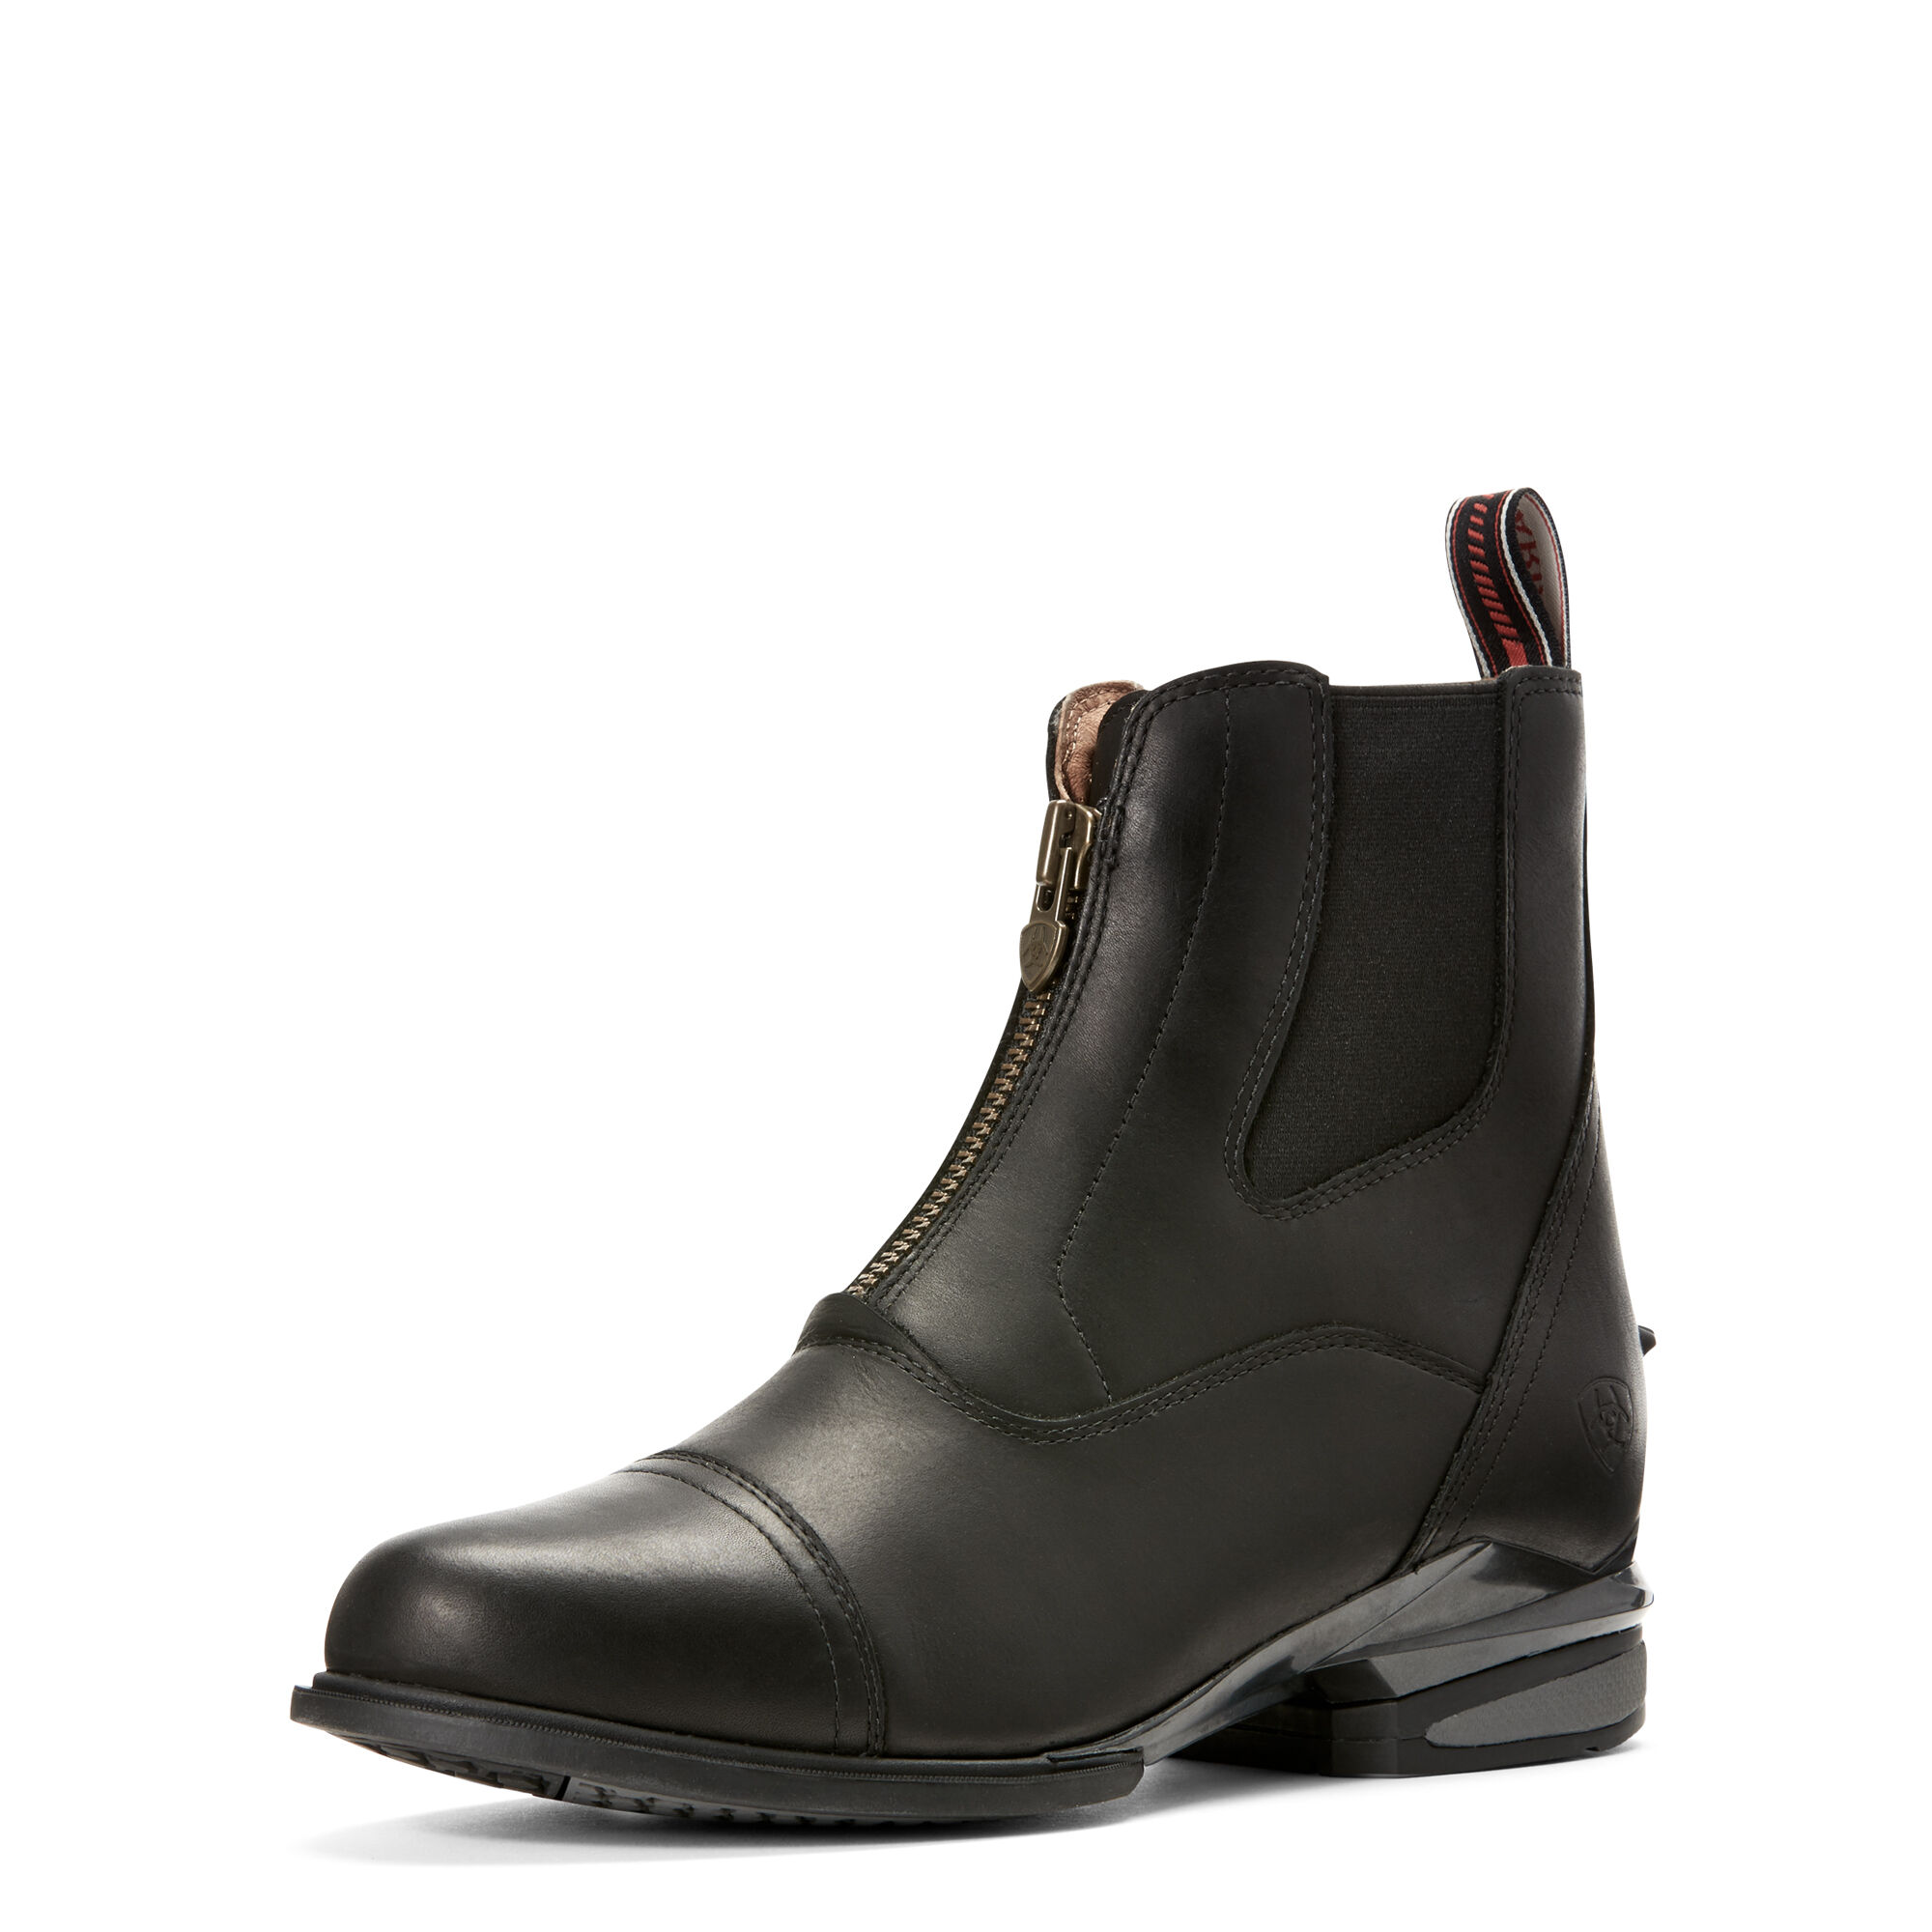 Ariat Damen Stiefelette Devon Nitro Zip  in black